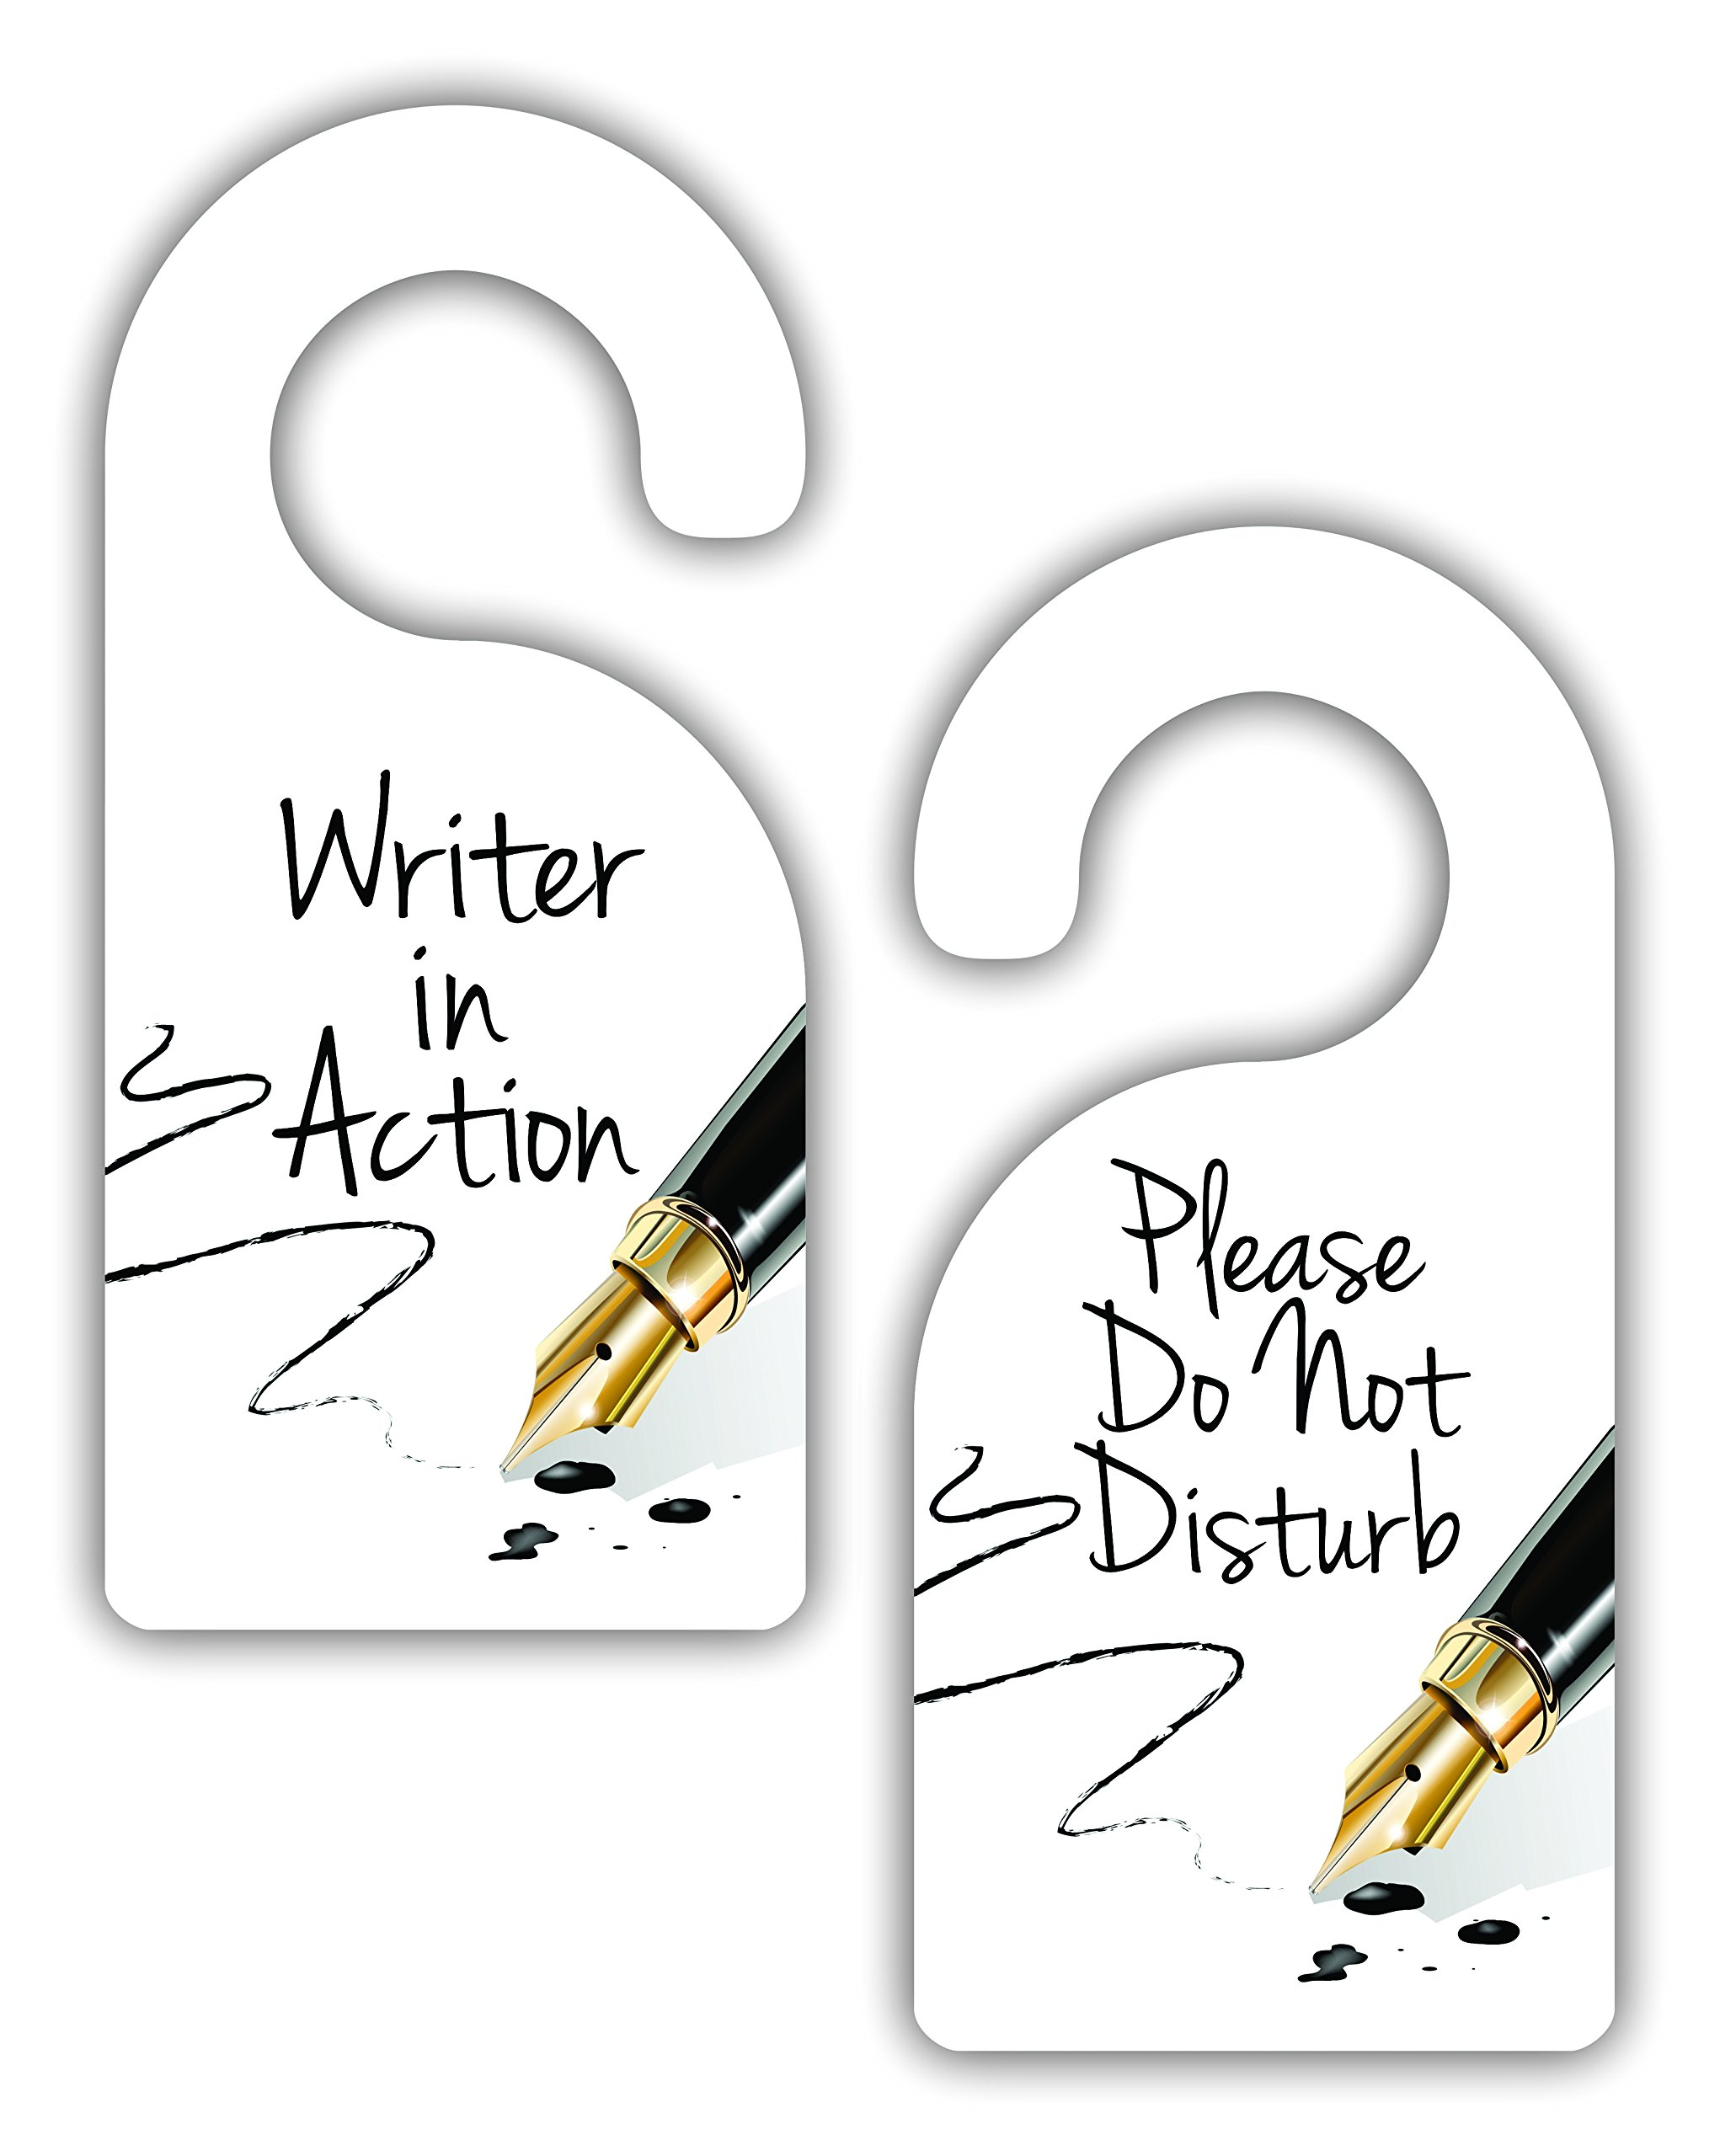 Writer in Action/Please Do Not Disturb - Author/Writer - Double-Sided Hard Plastic Glossy Door Hanger